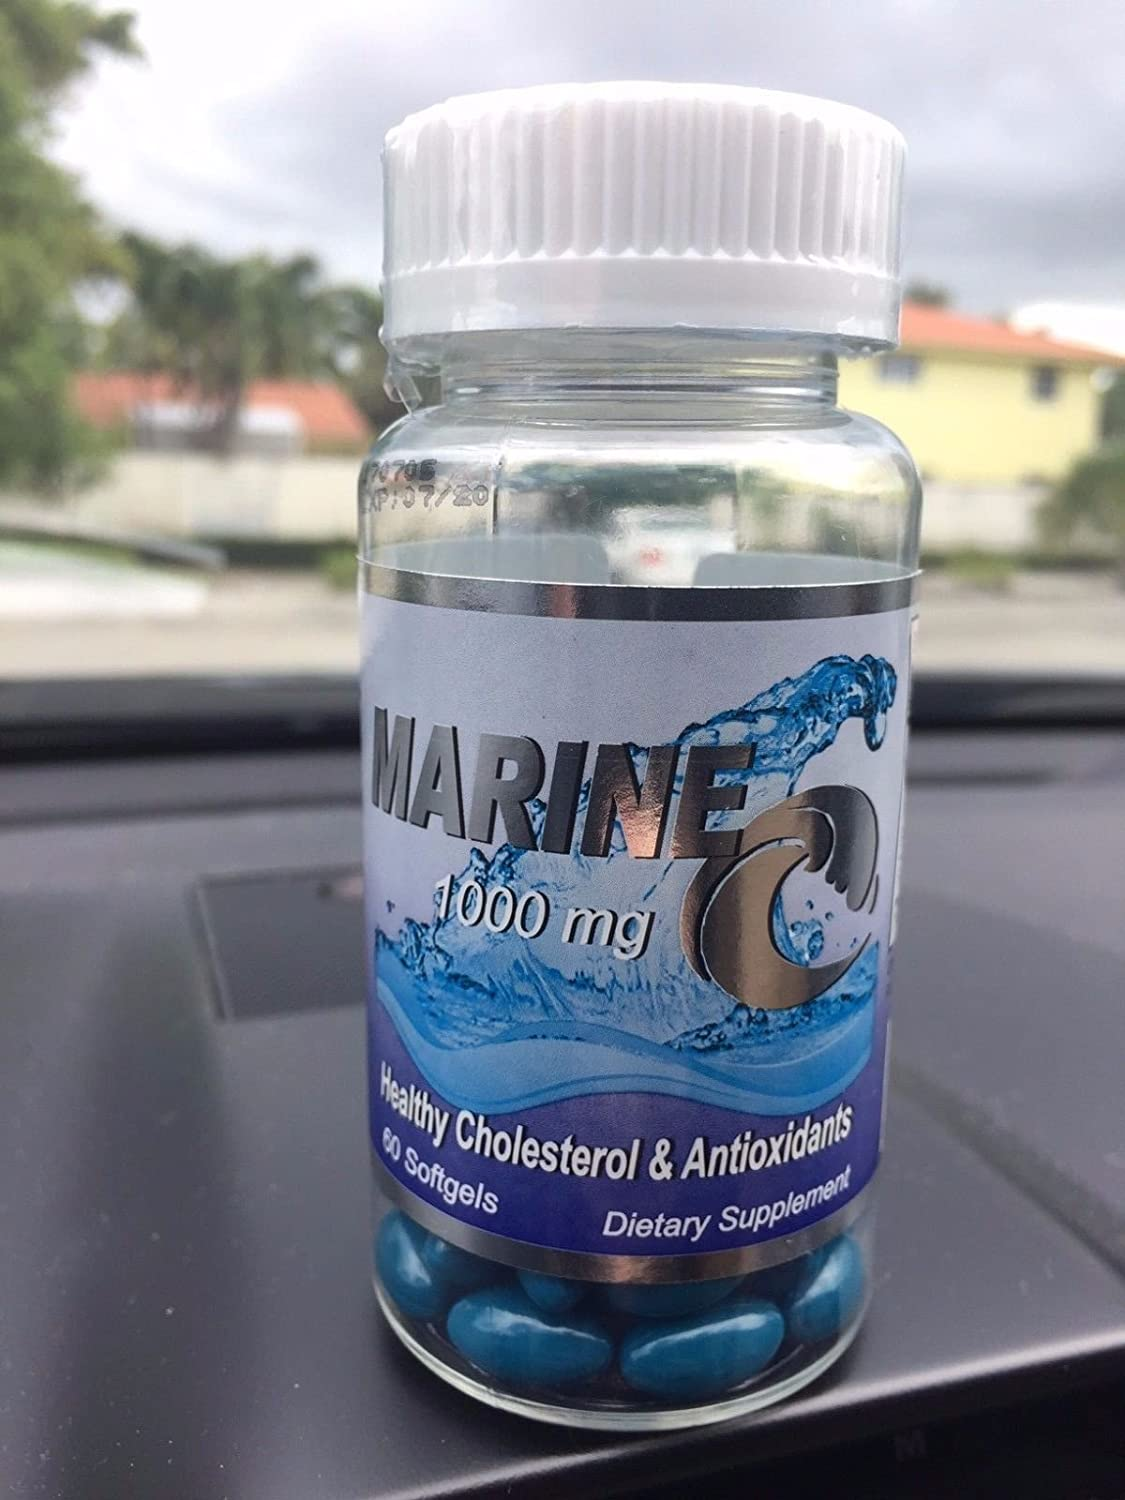 Amazon.com: Marine C 1000 mg , Colageno Marino Healthy Cholesterol Antioxidante Hidrolizado Fish Collagen: Health & Personal Care